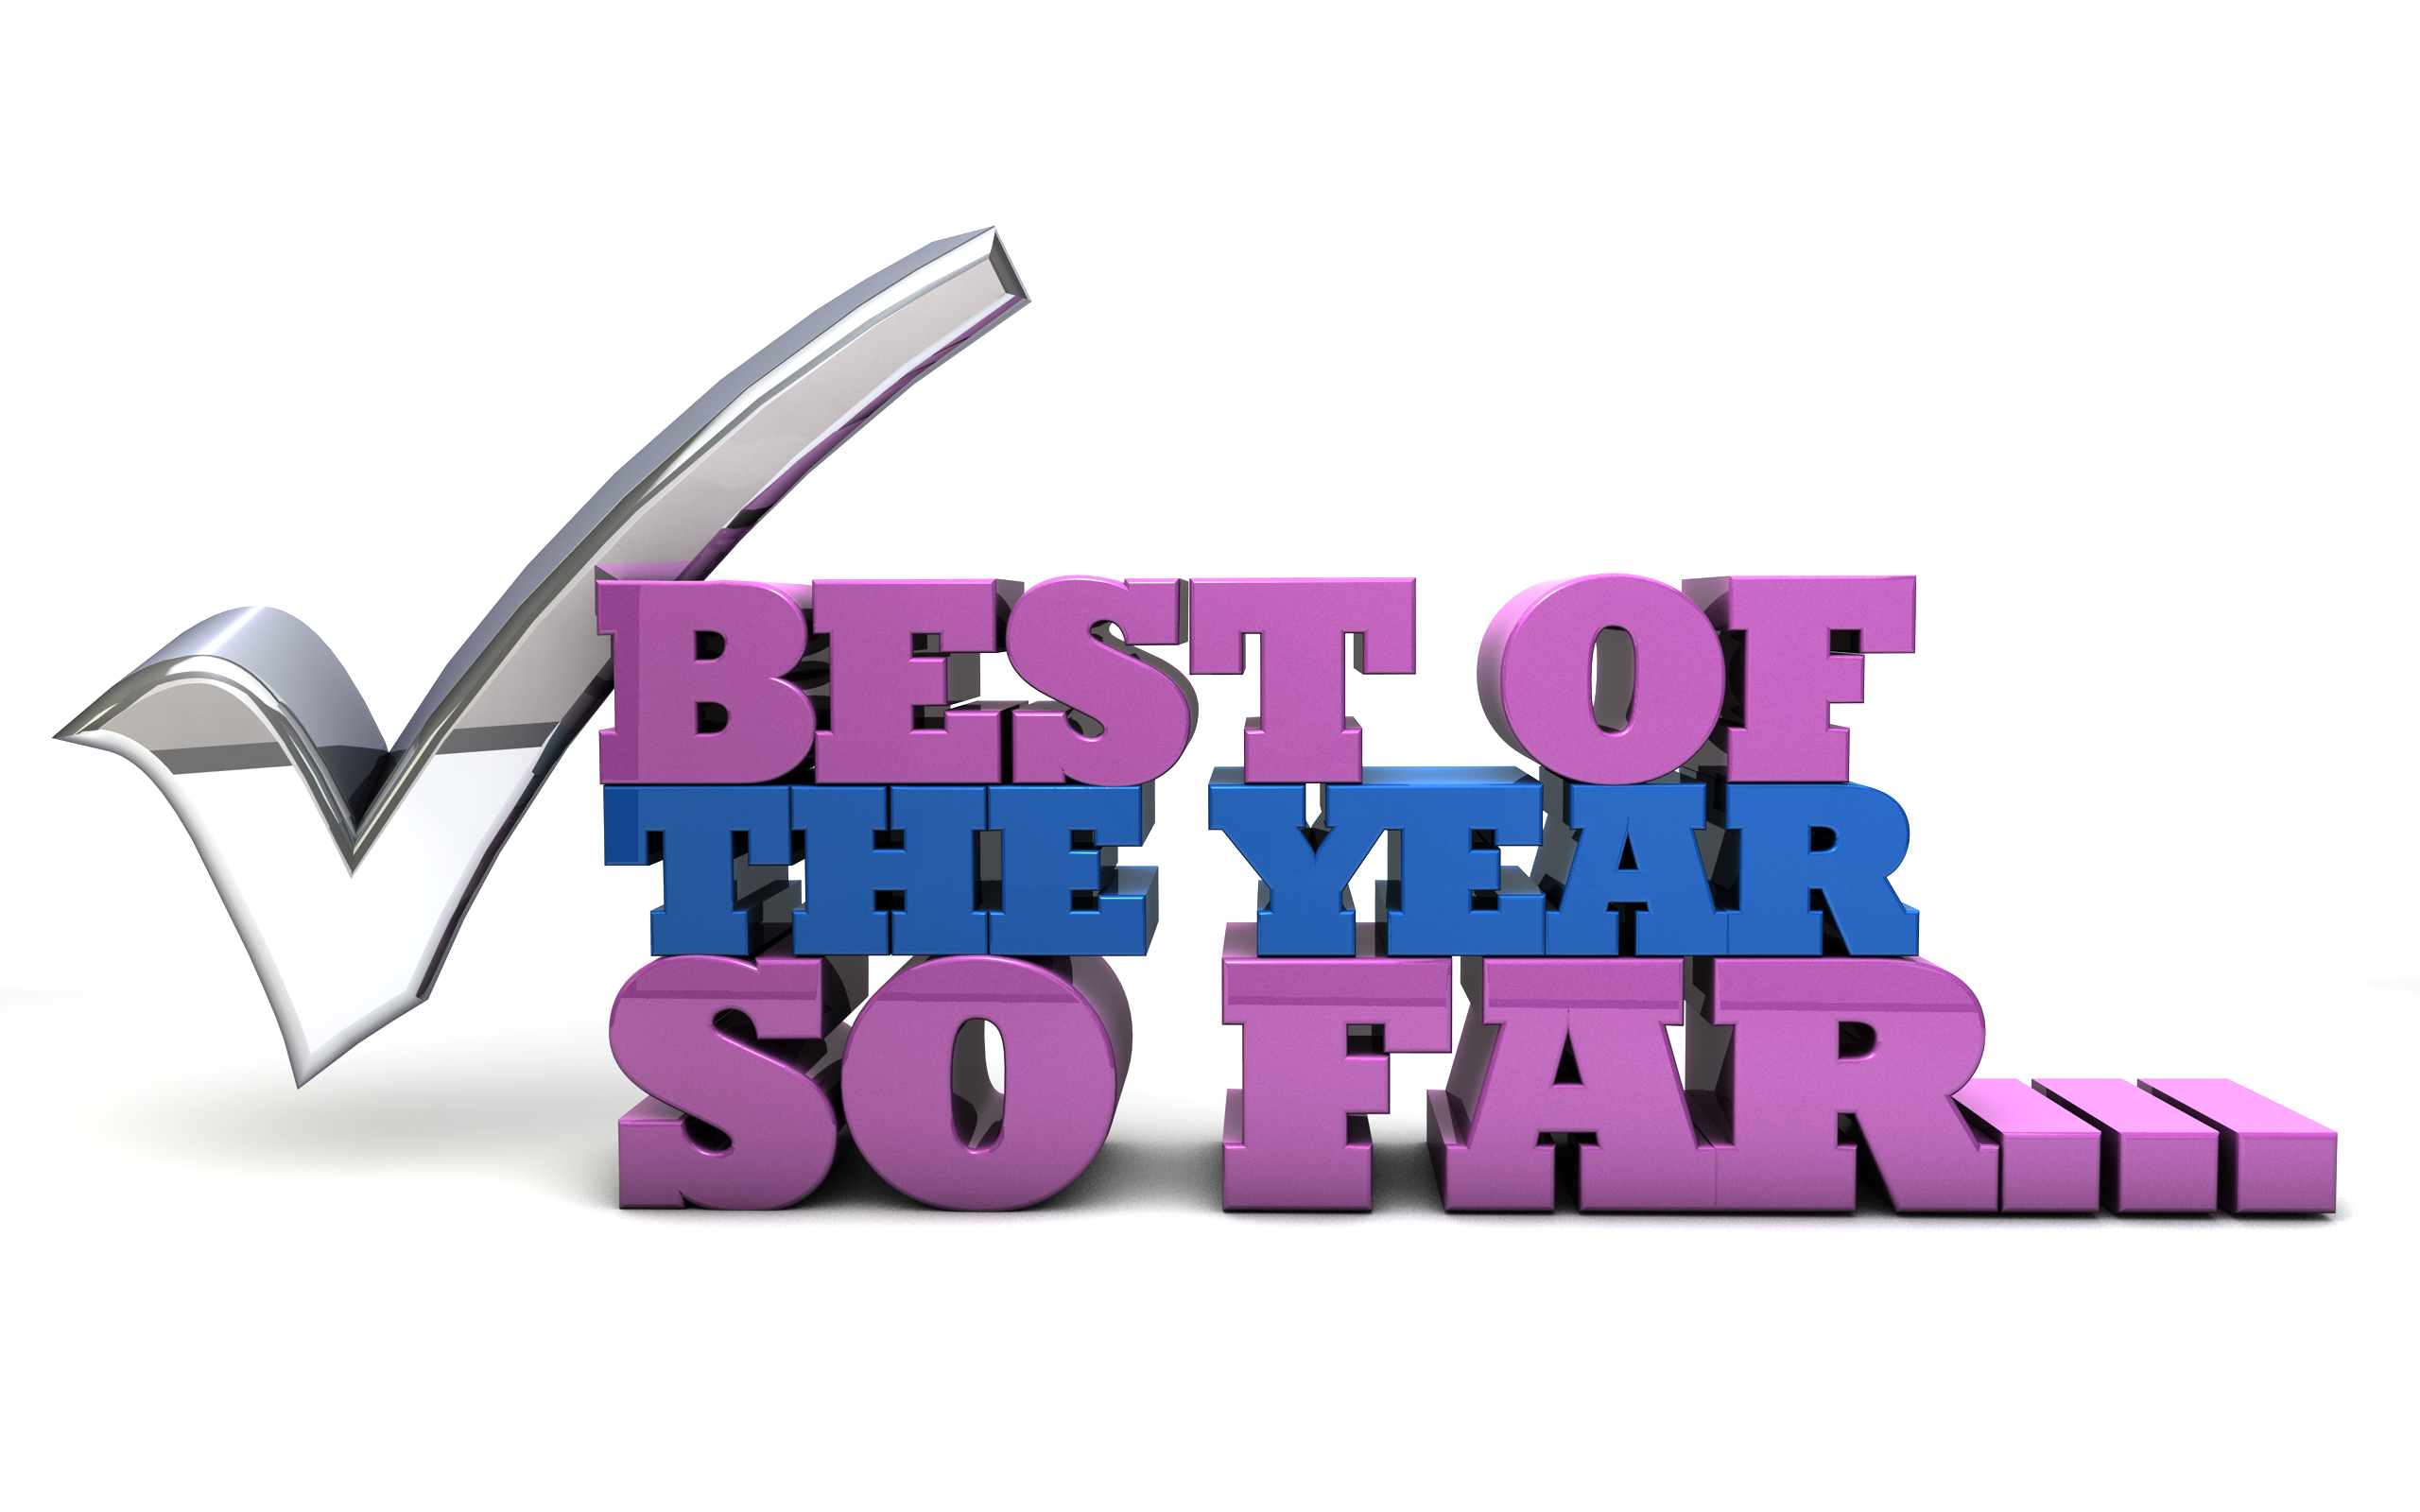 Best of the year - free marketing and advertising illustration